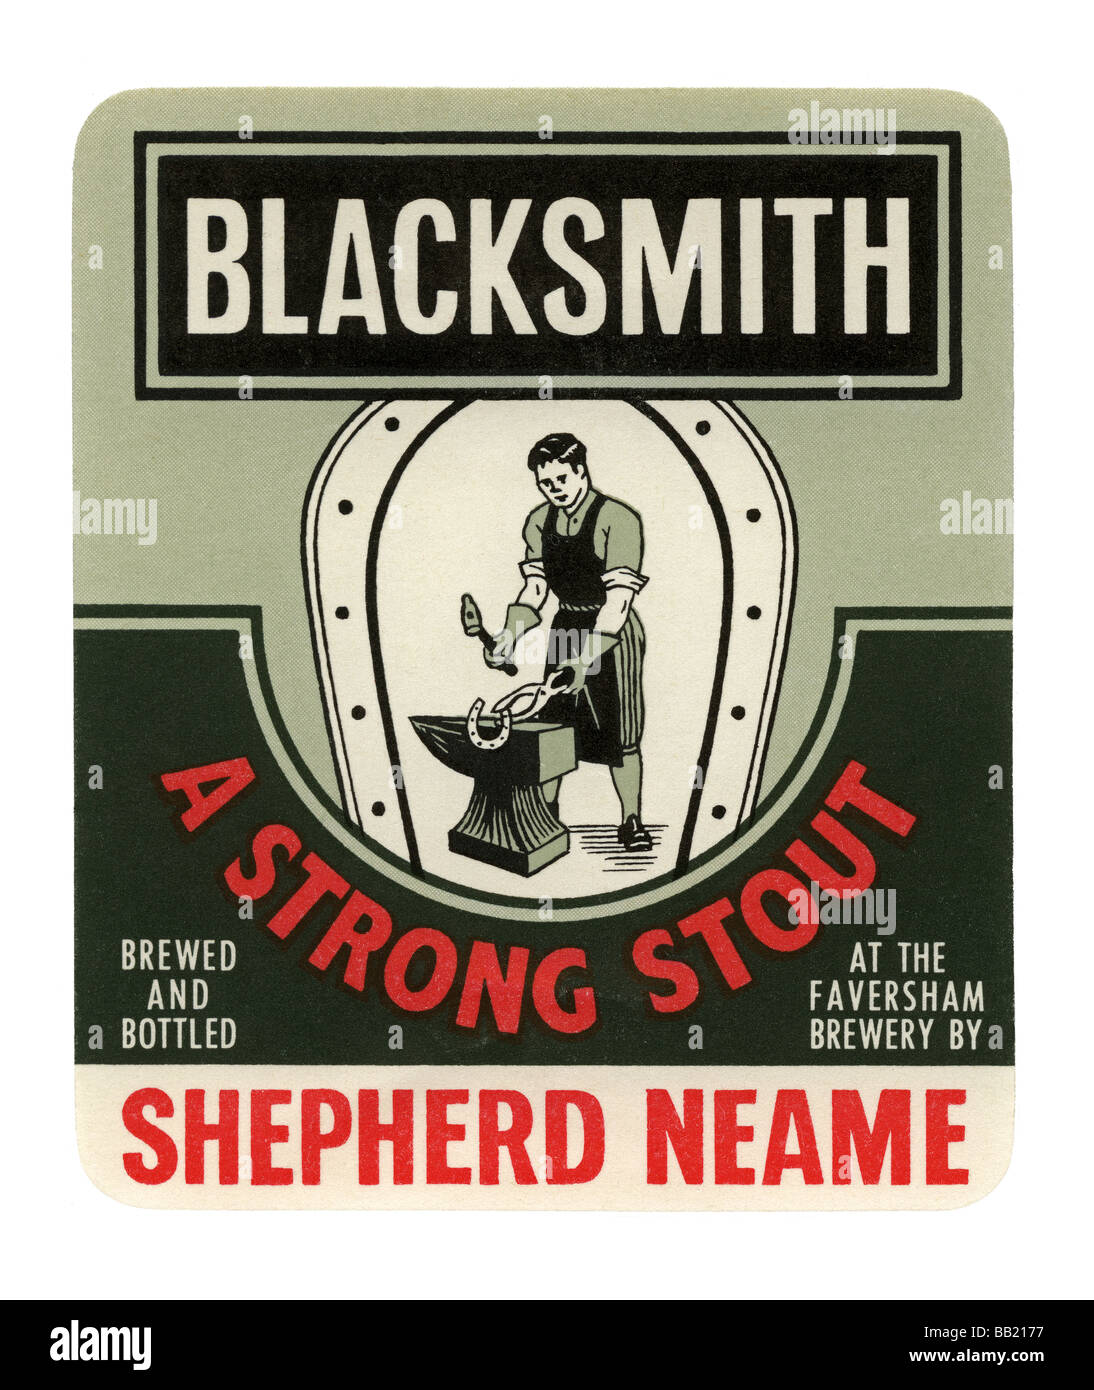 Old British beer label for Shepherd Neame's Blacksmith Strong Stout, Faversham, Kent - Stock Image